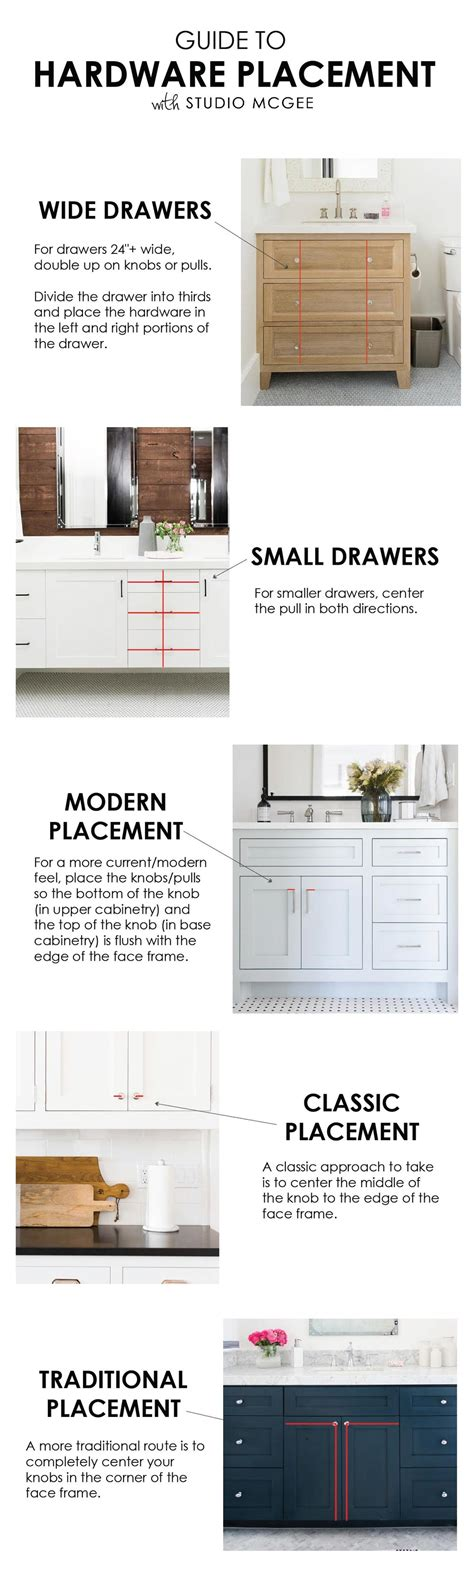 kitchen cabinet hardware placement hardware placement guide studio mcgee